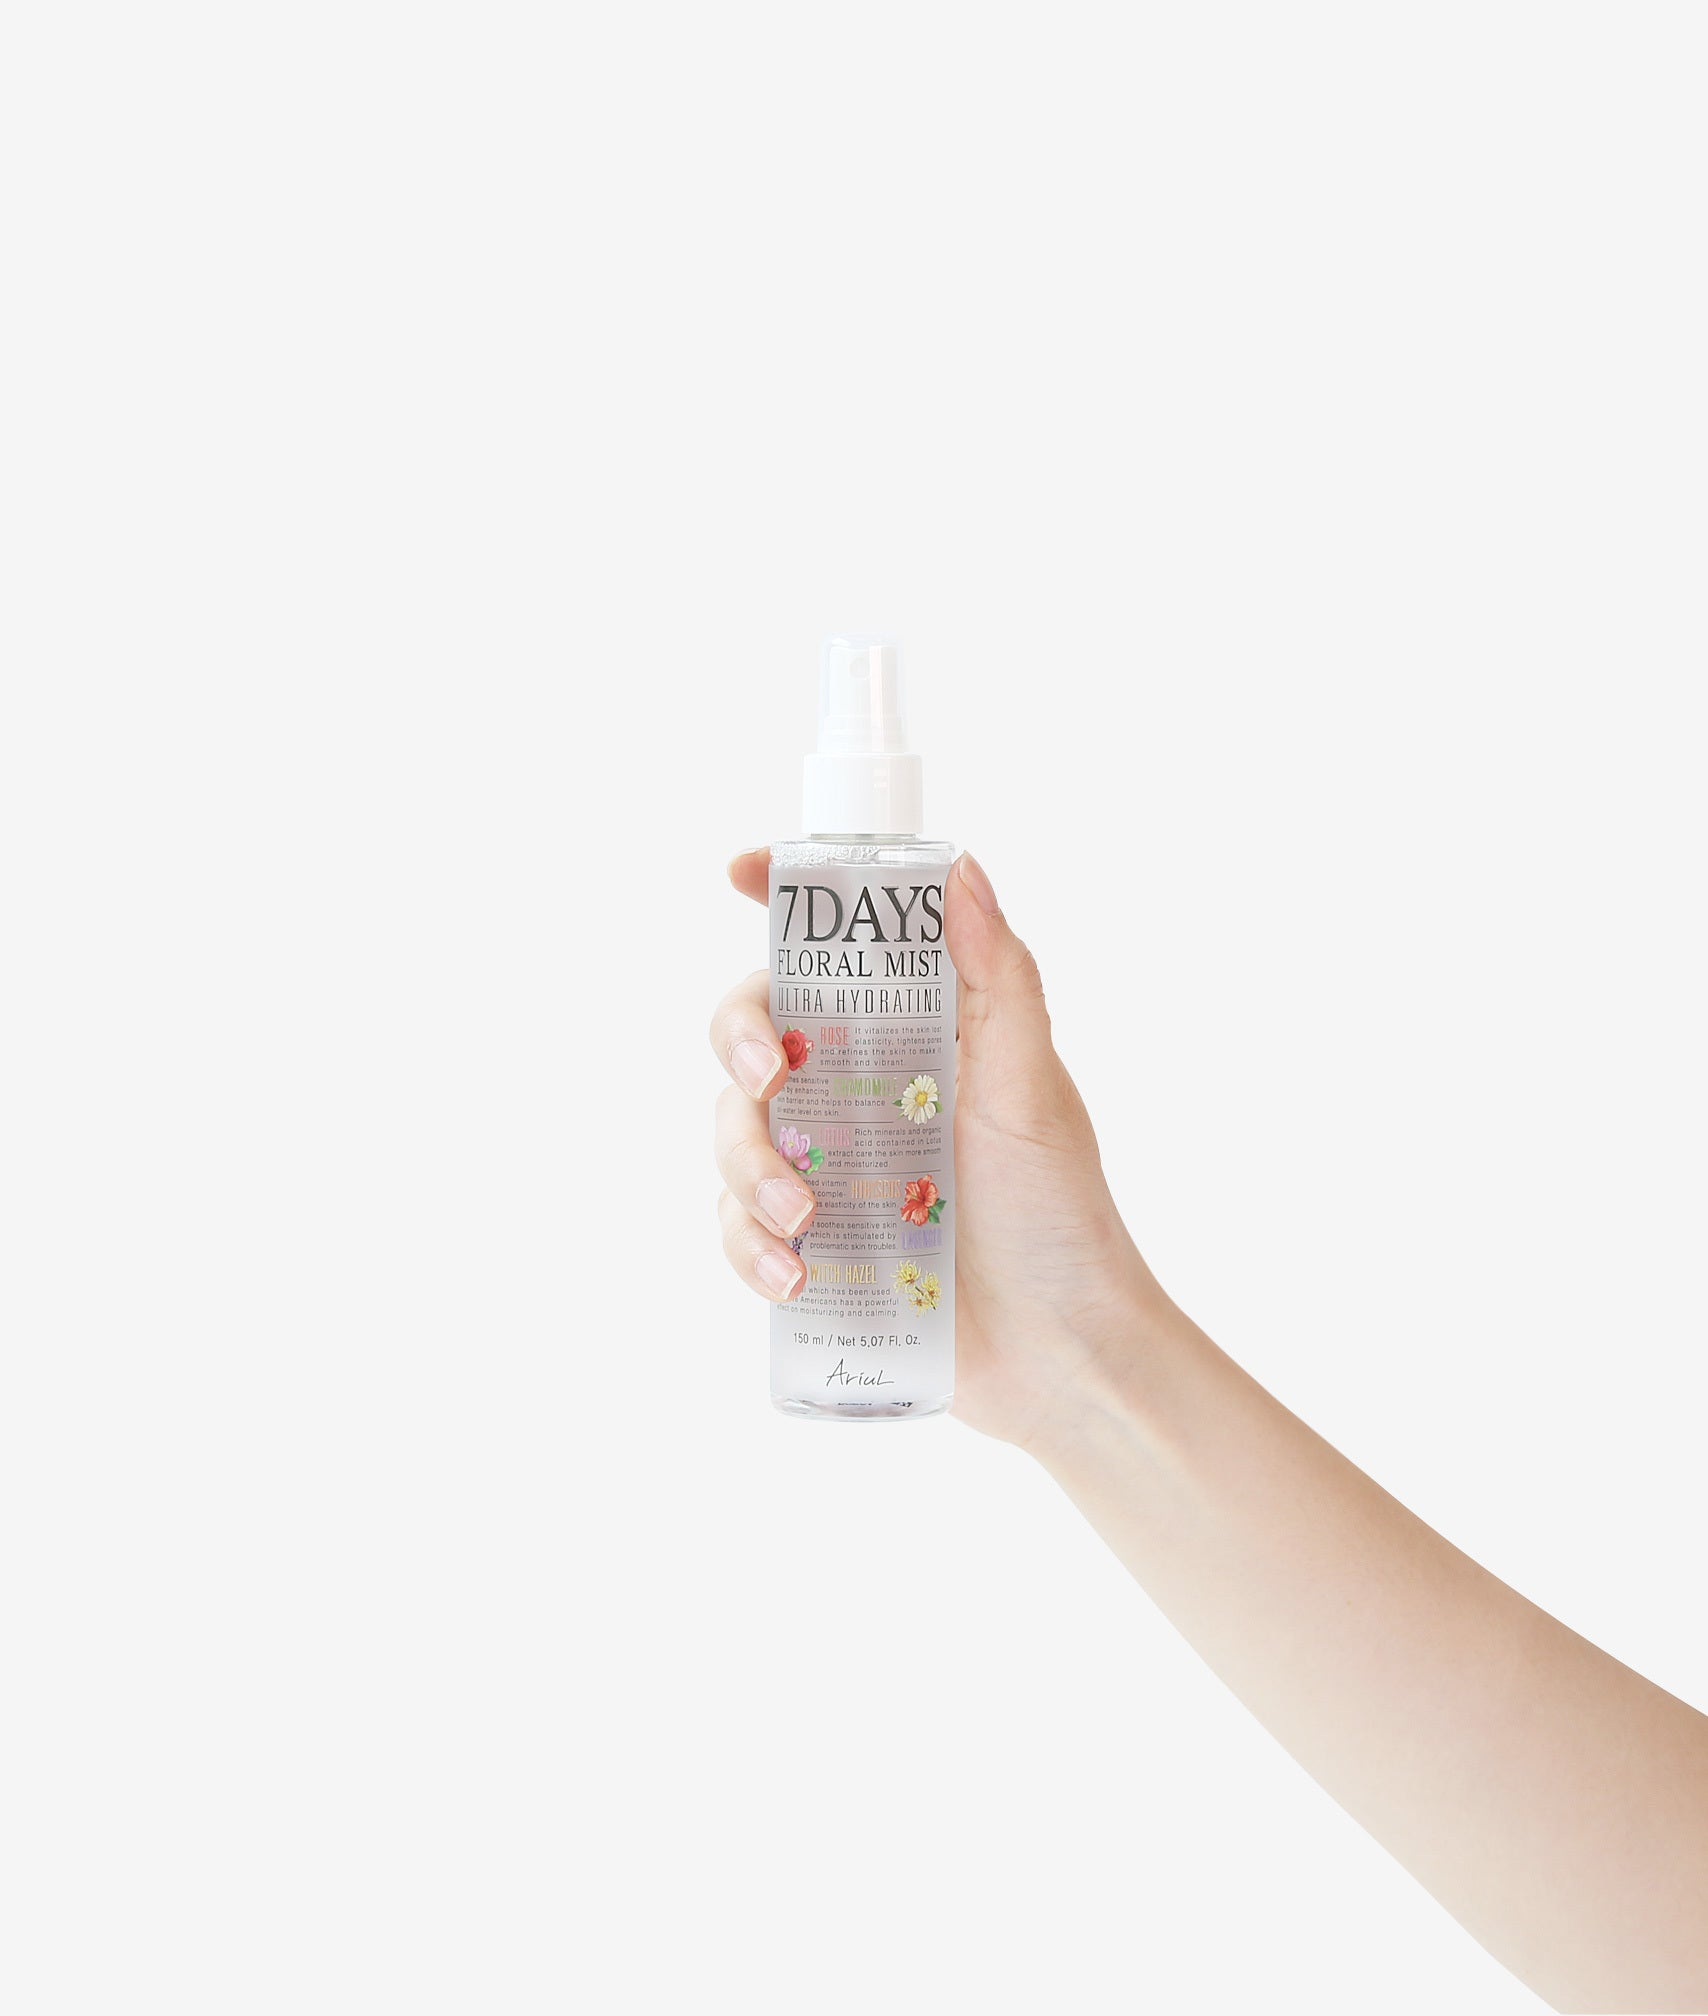 Ariul 7days Floral Mist Ultra Hydrating